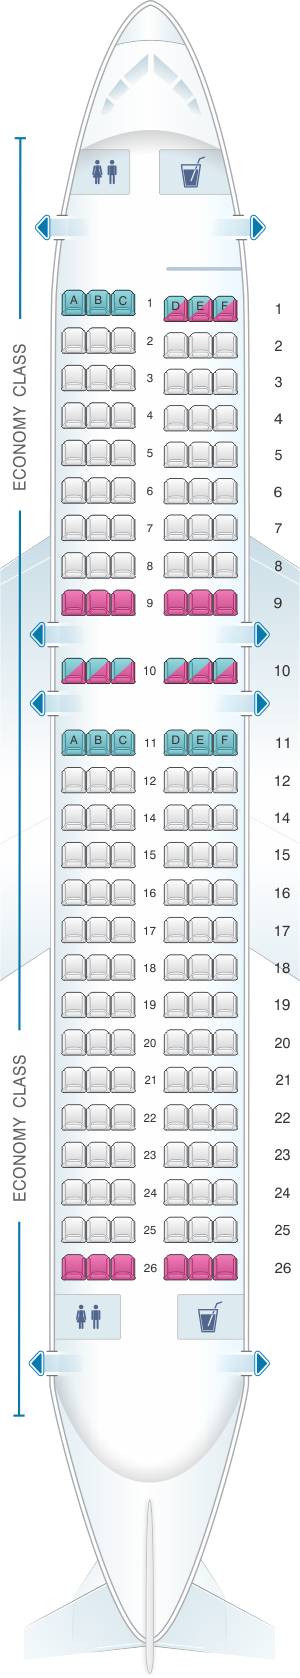 Seat map for Cebu Pacific Air Airbus A319